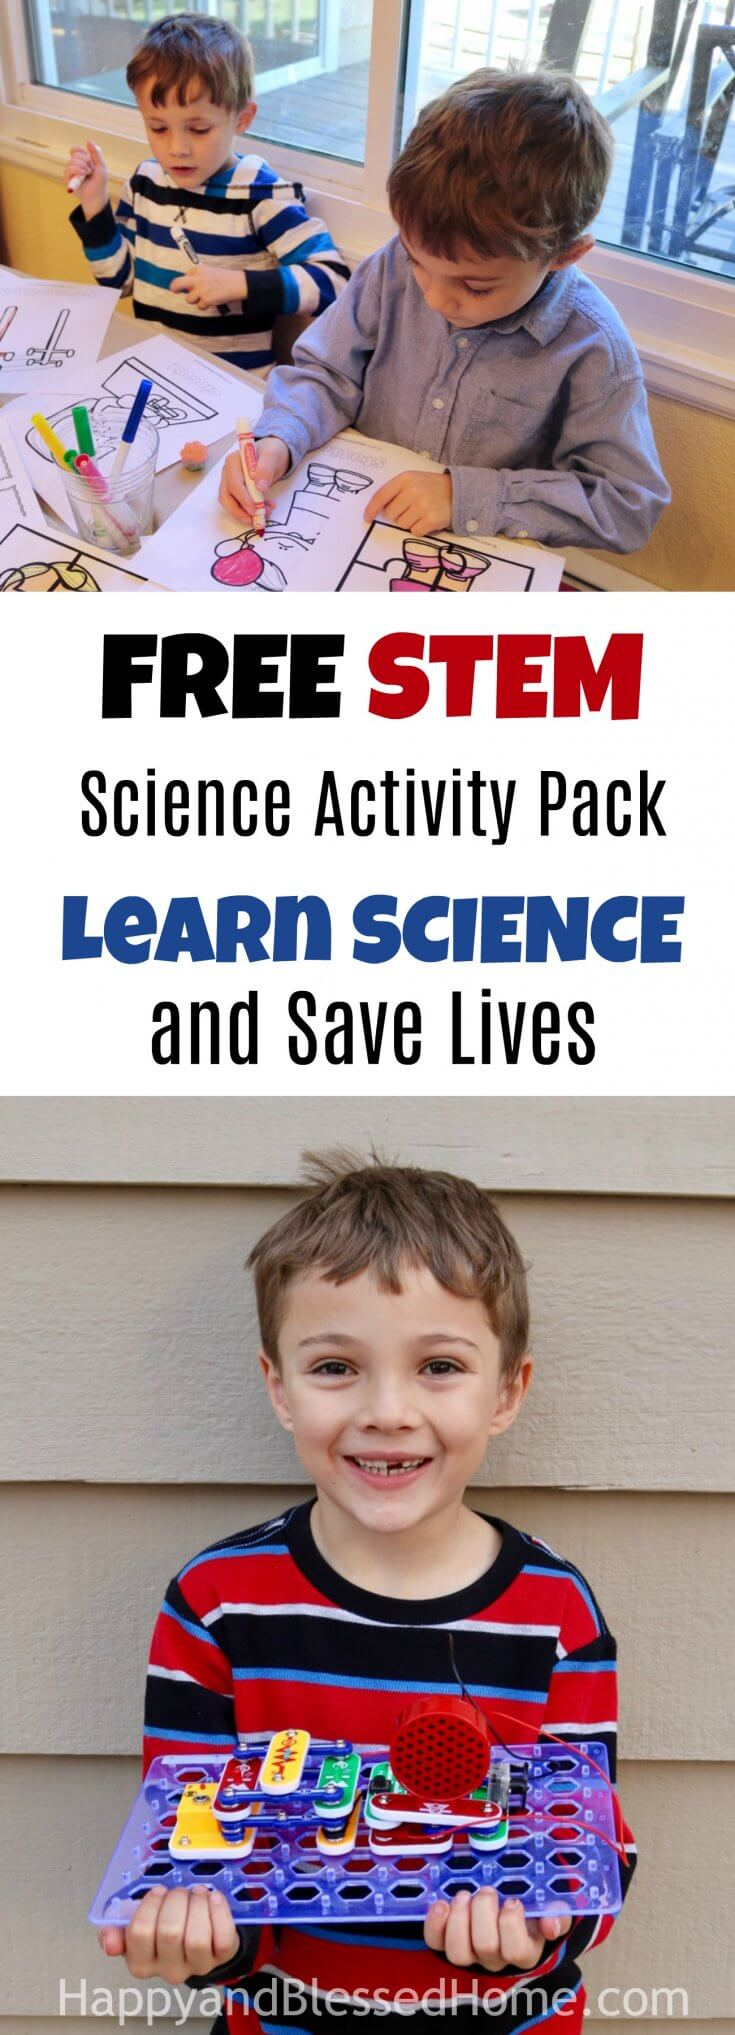 FREE STEM Science Activity Pack - Learn Science and Save Lives